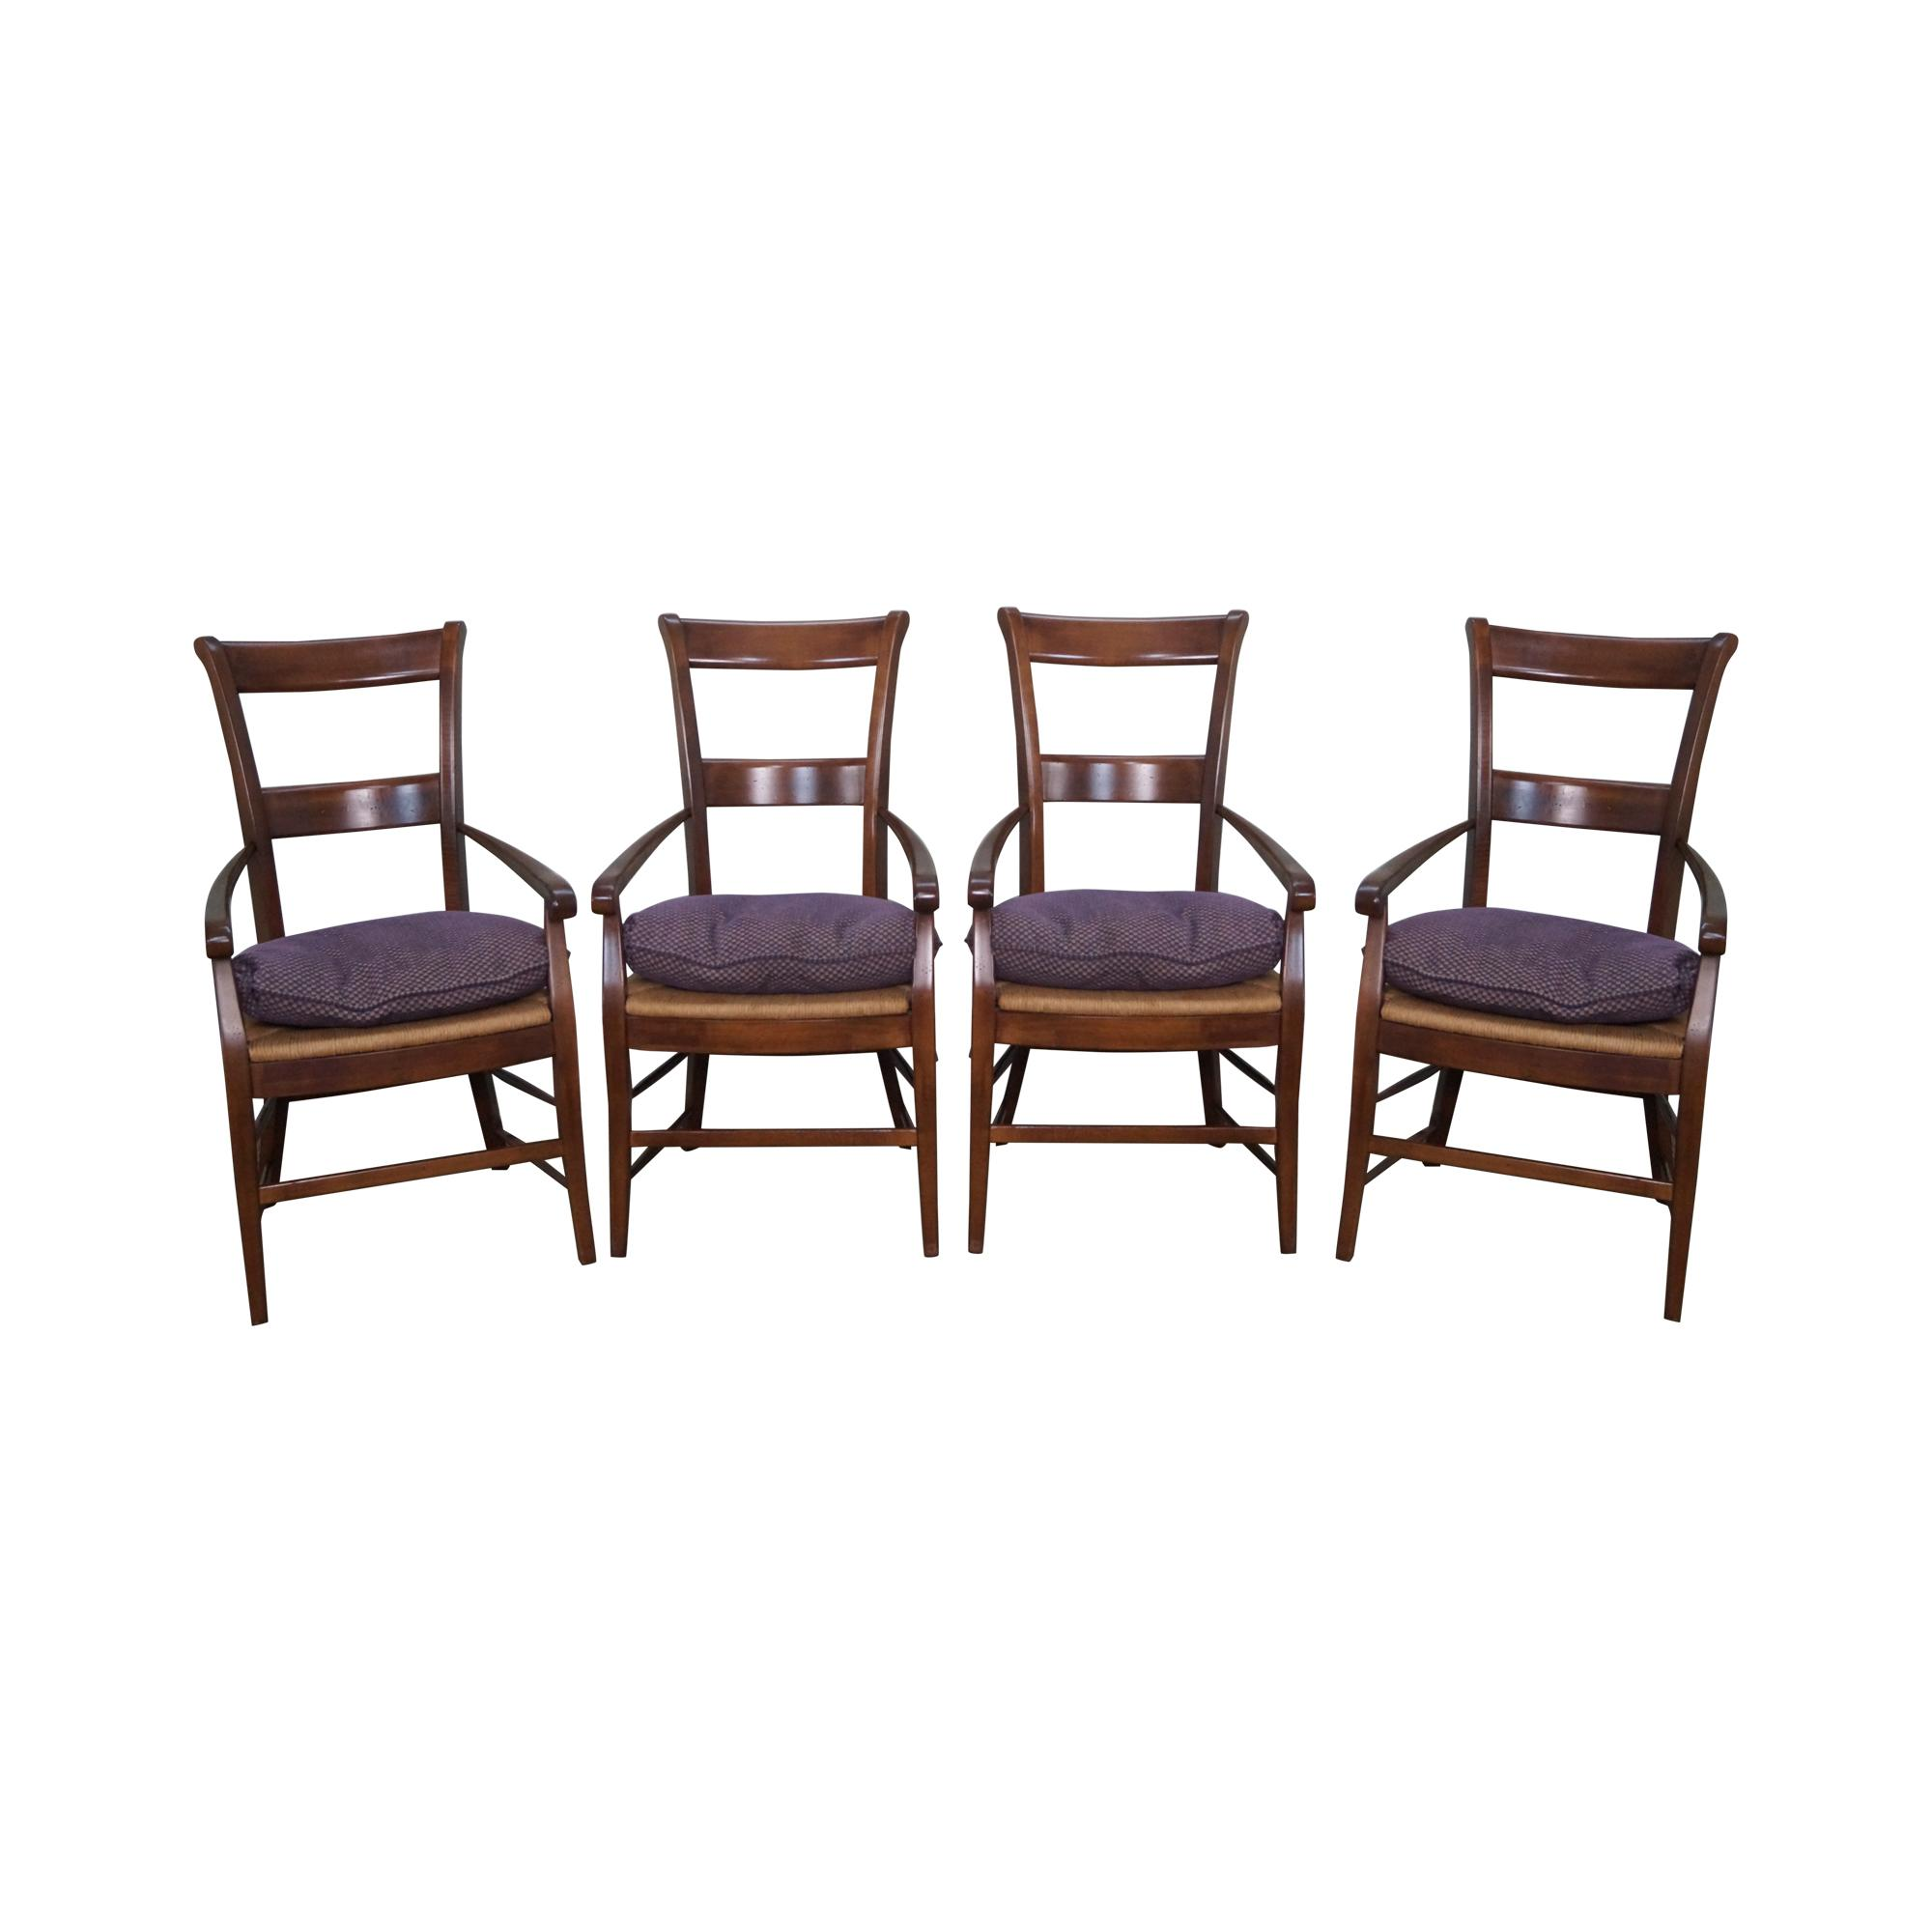 French Country Rush Seat Dining Chairs Set Of 4 Chairish